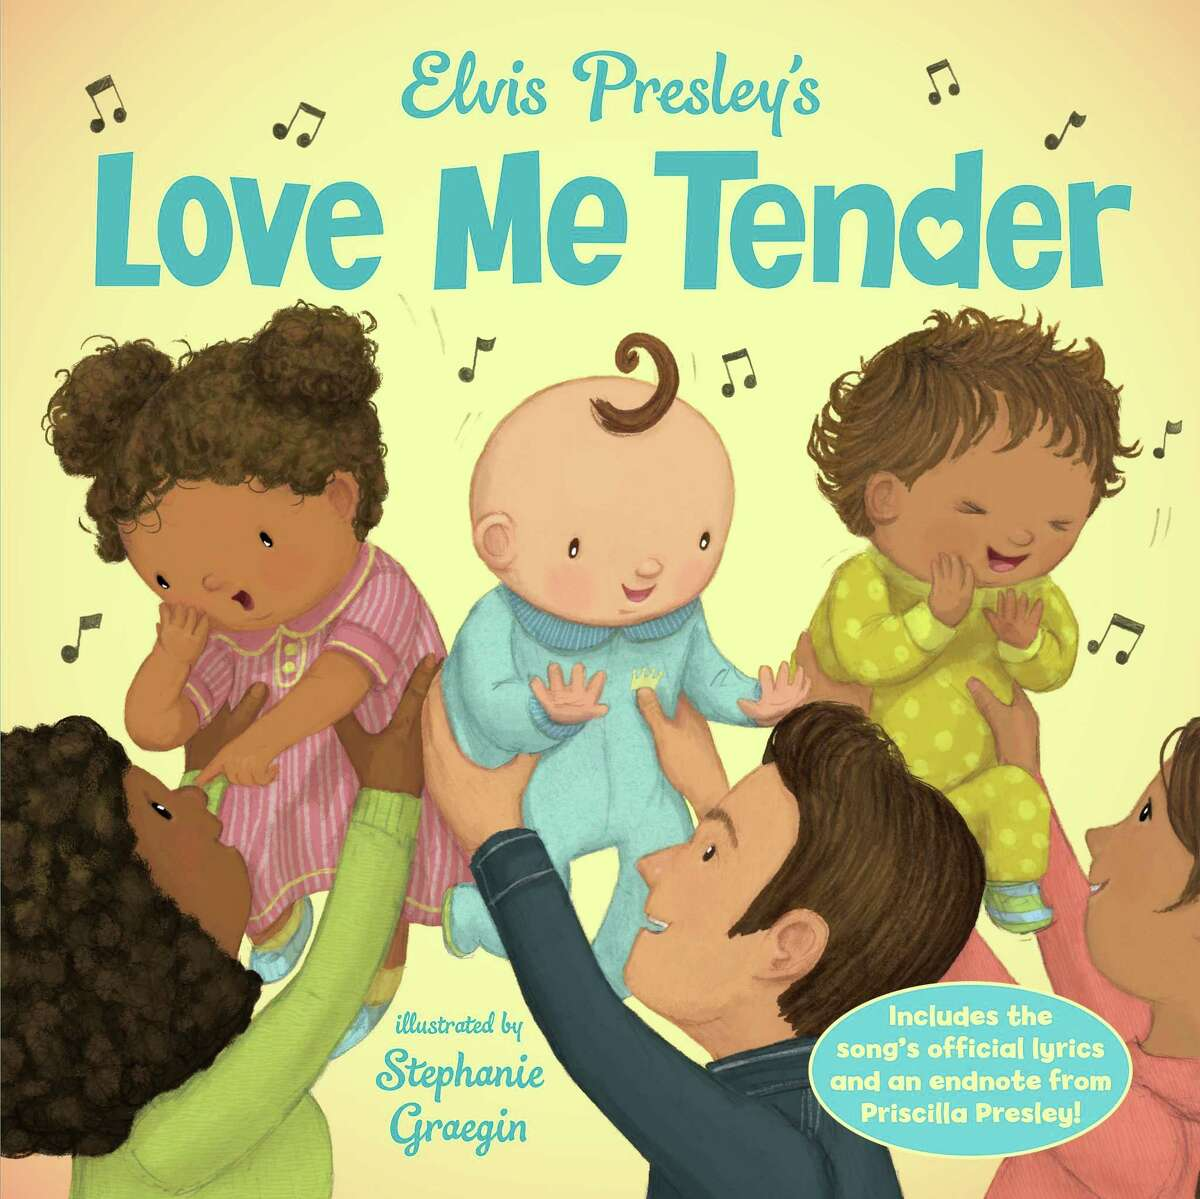 """CHILDREN'S BOOKS: """"Elvis Presley's Love Me Tender,"""" with illustrations by Stephanie Graegin. Penguin Young Readers, $17.99"""